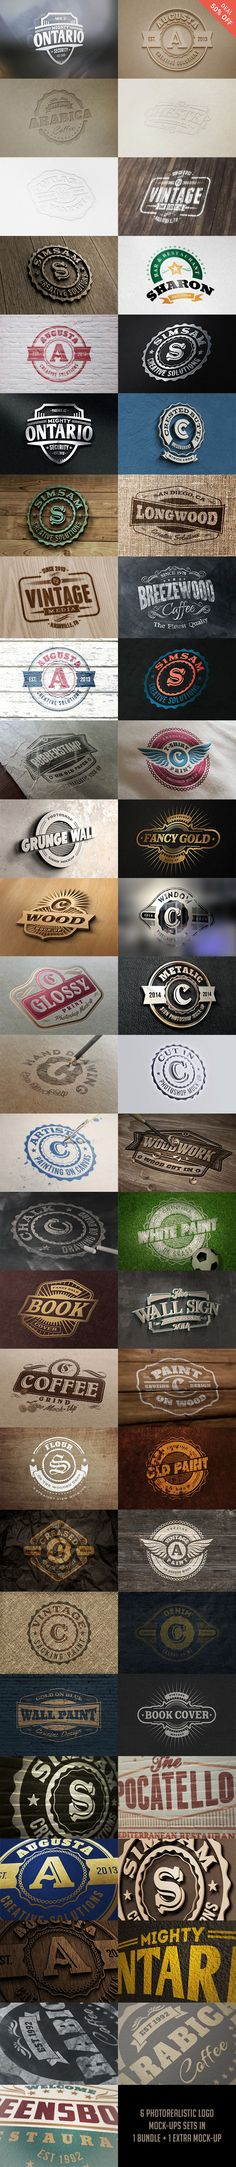 A bundle of 55 photorealistic logo mock-ups great for presentation of your logo, badge, sign design, text or shape...